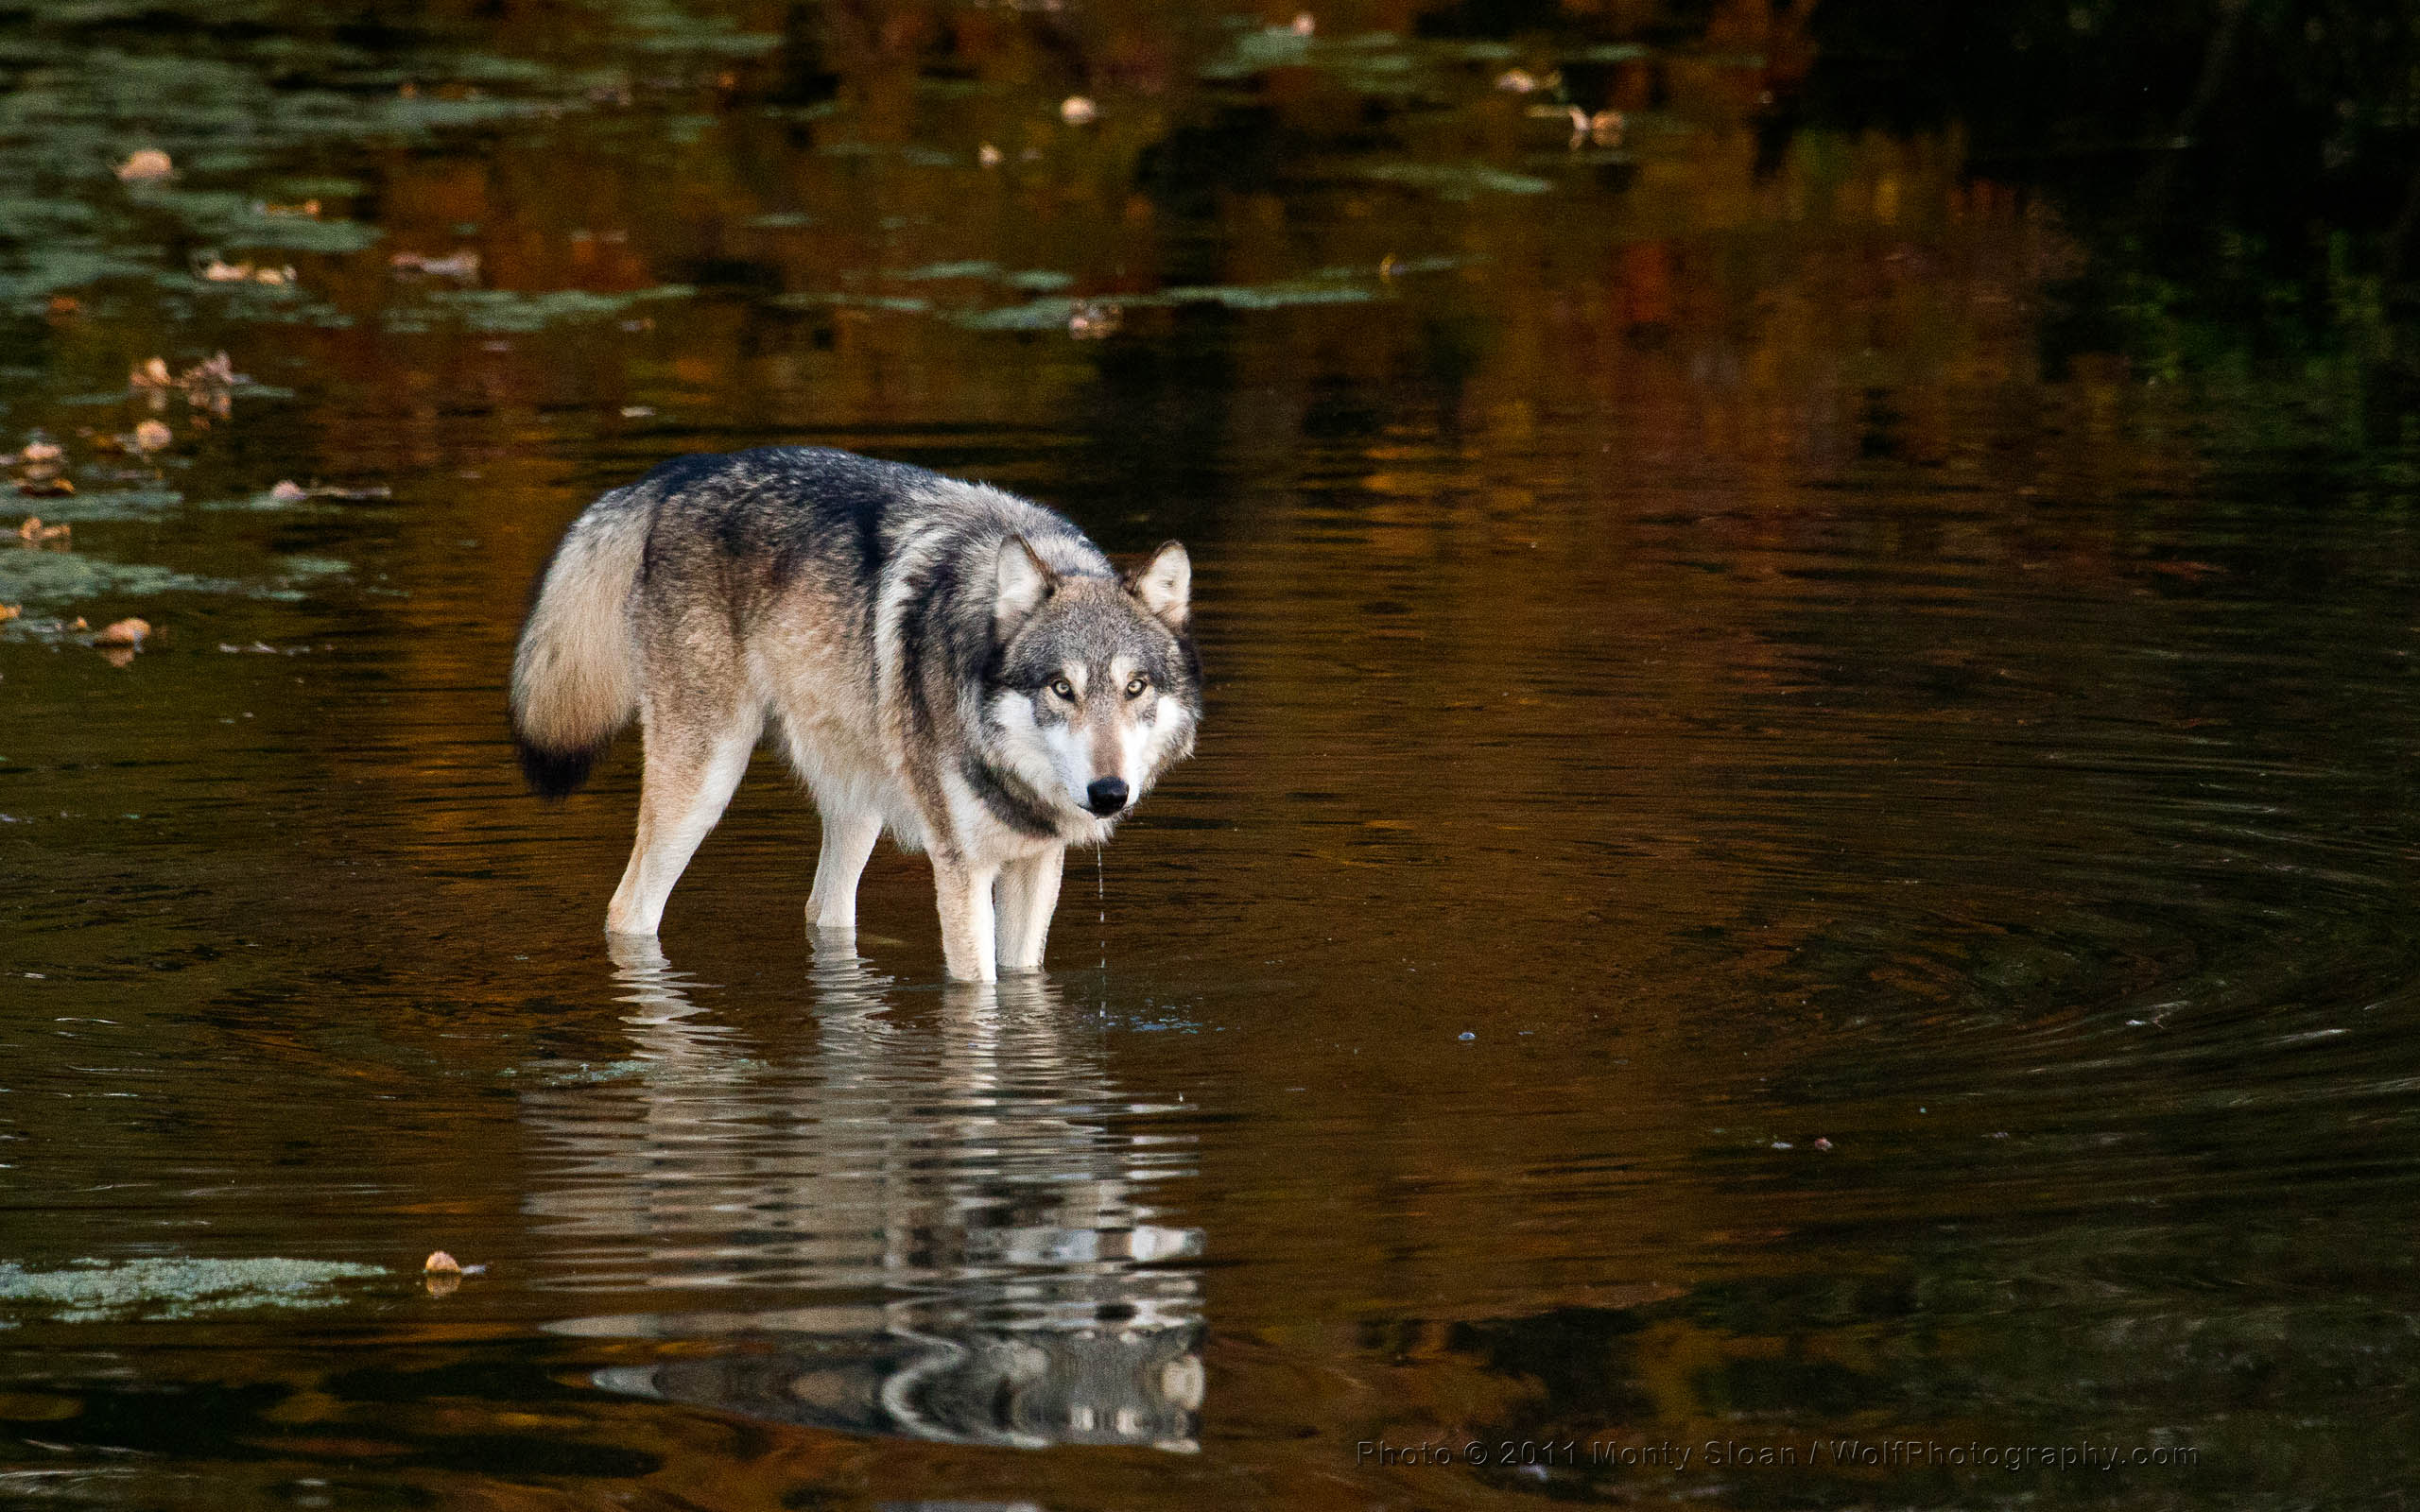 Wolfgang Wading in the Pond